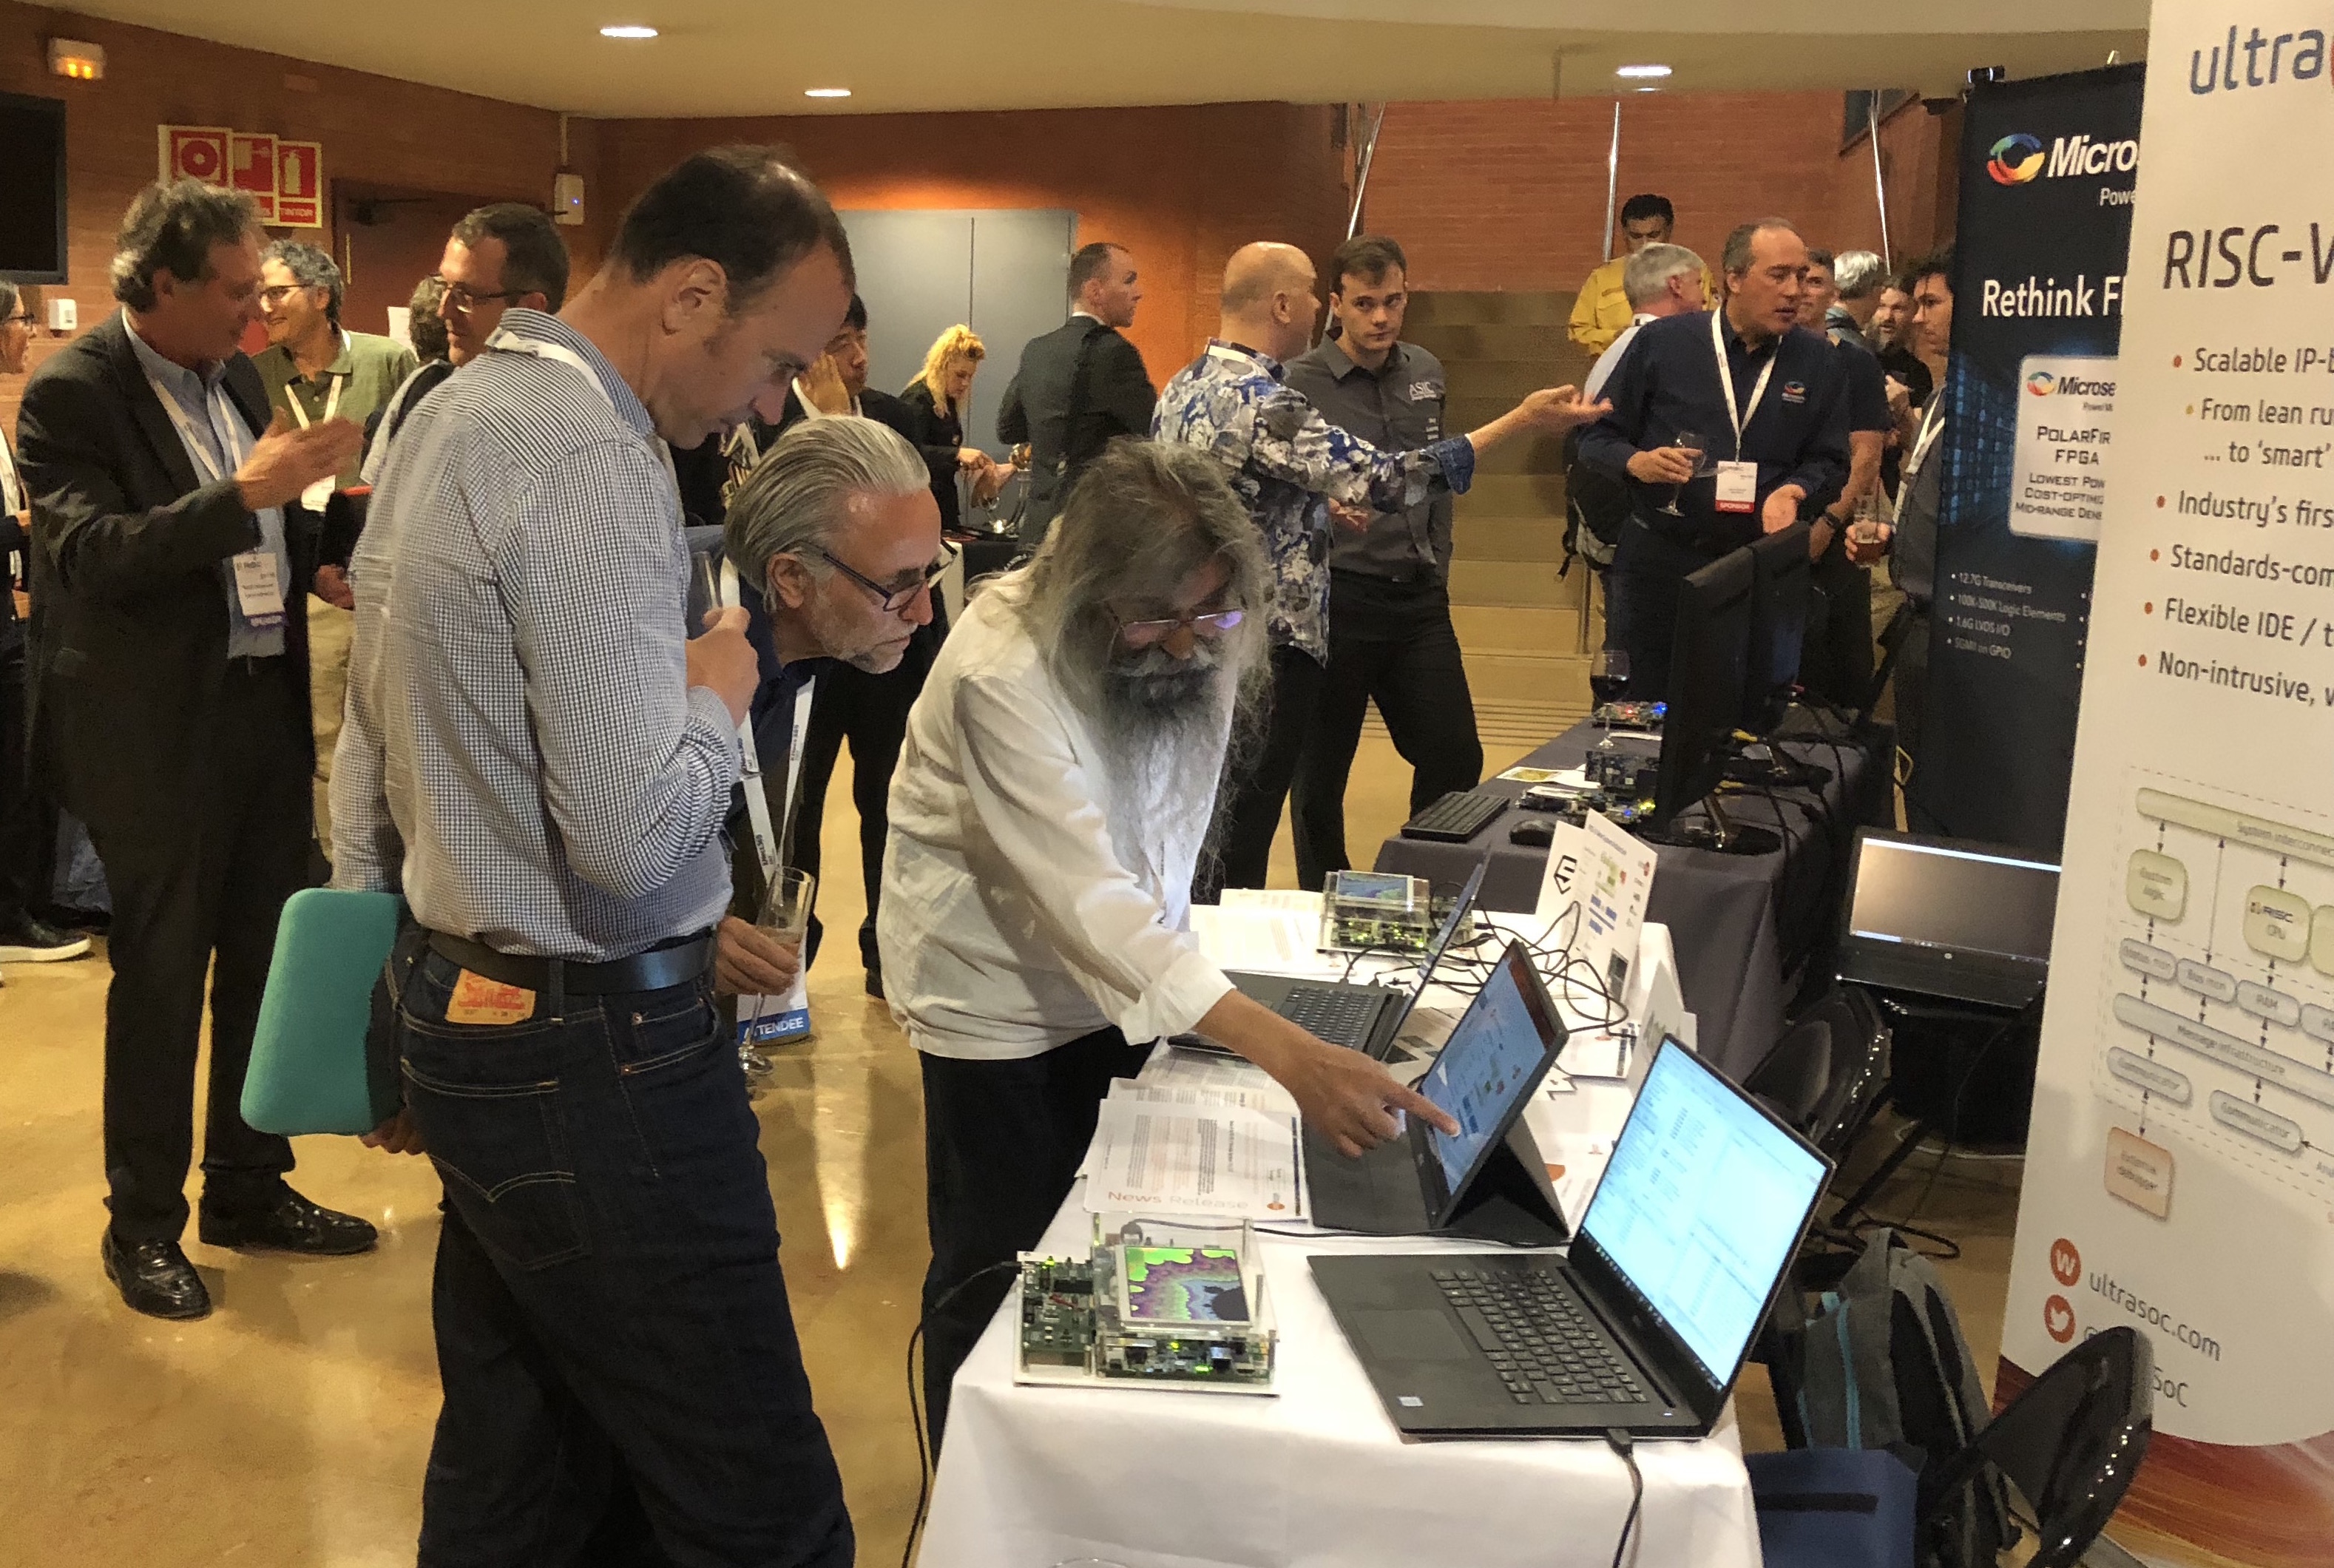 RISC-V Workshop: security, scalability, and Super Mario